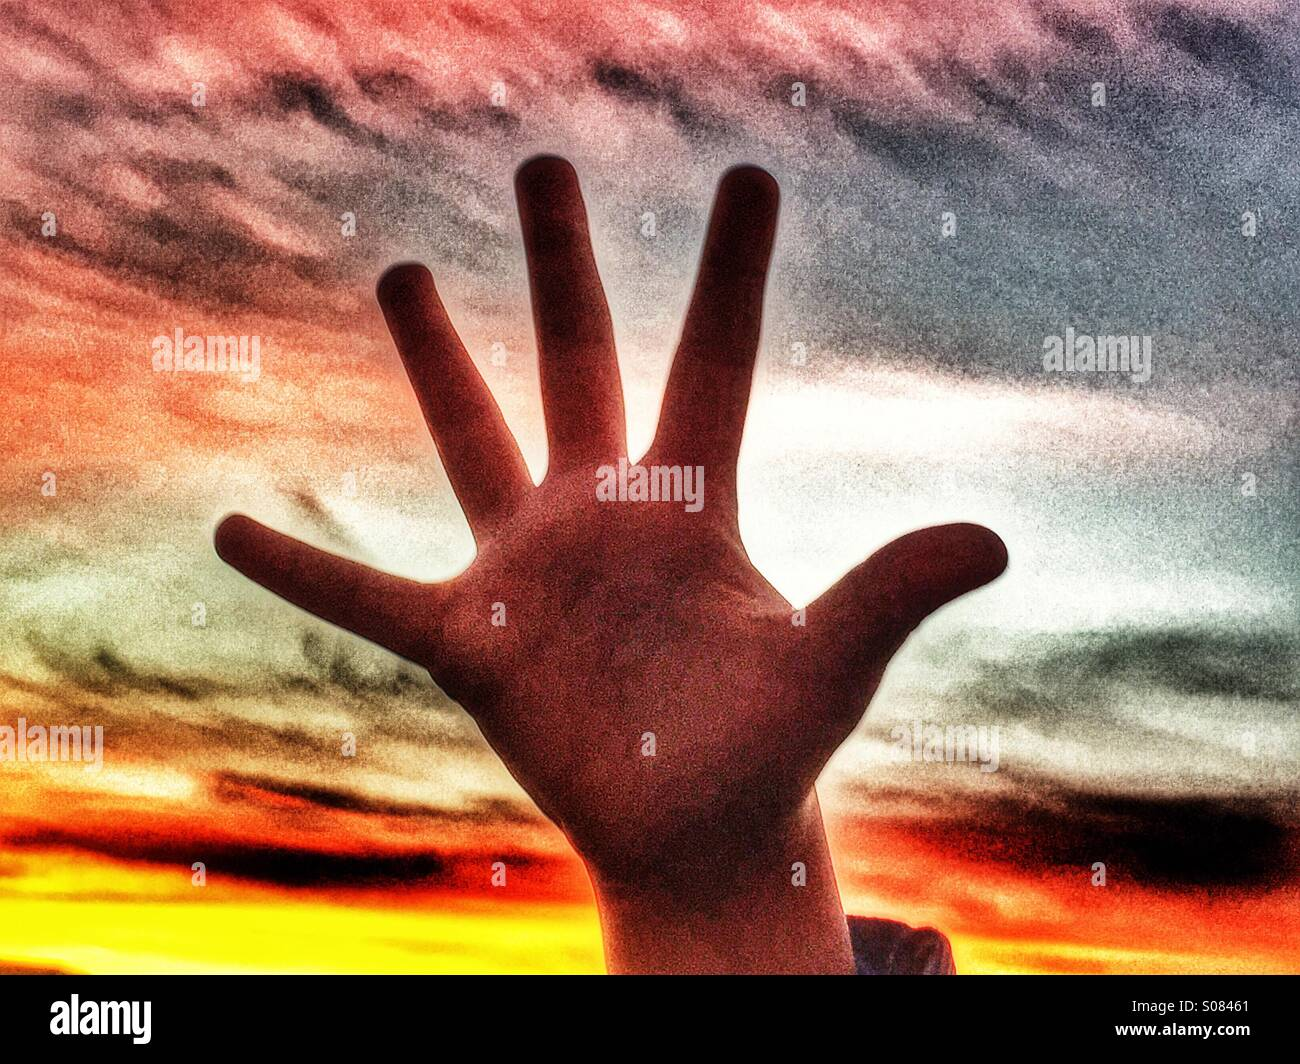 Child's hand against sunset - Stock Image